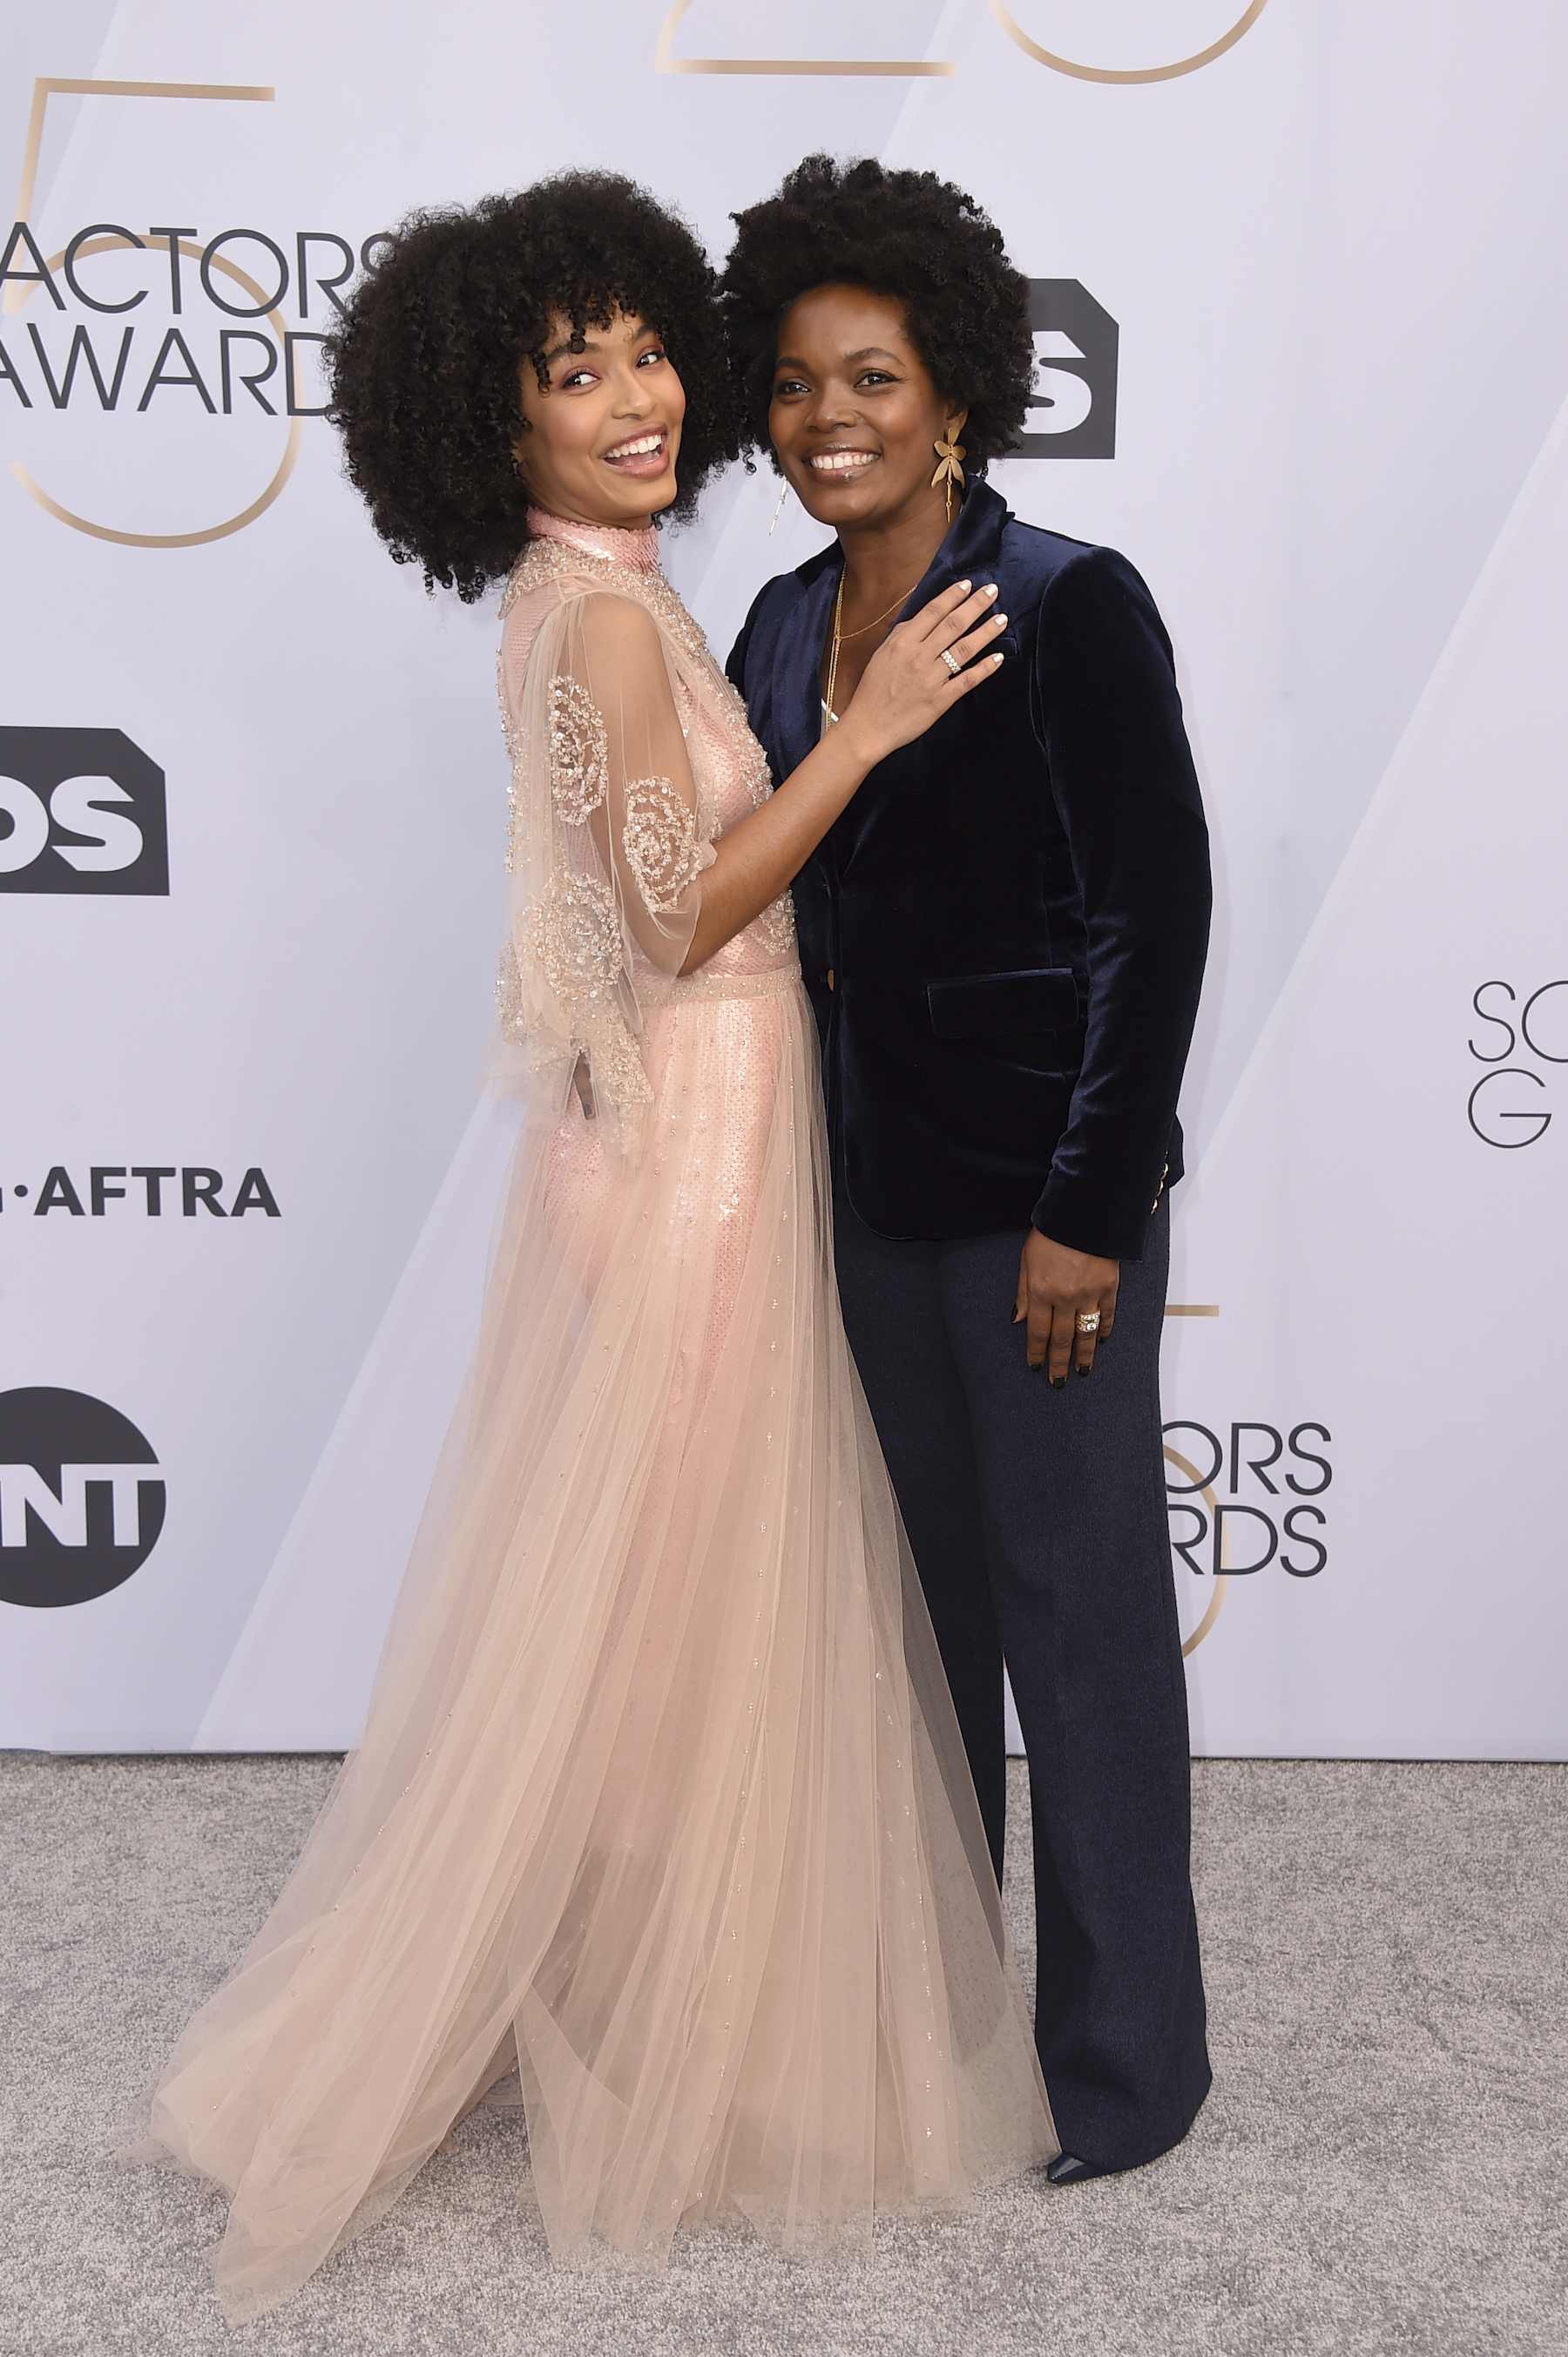 <div class='meta'><div class='origin-logo' data-origin='AP'></div><span class='caption-text' data-credit='Jordan Strauss/Invision/AP'>Yara Shahidi, left, and Keri Shahidi arrive at the 25th annual Screen Actors Guild Awards at the Shrine Auditorium & Expo Hall on Sunday, Jan. 27, 2019, in Los Angeles.</span></div>